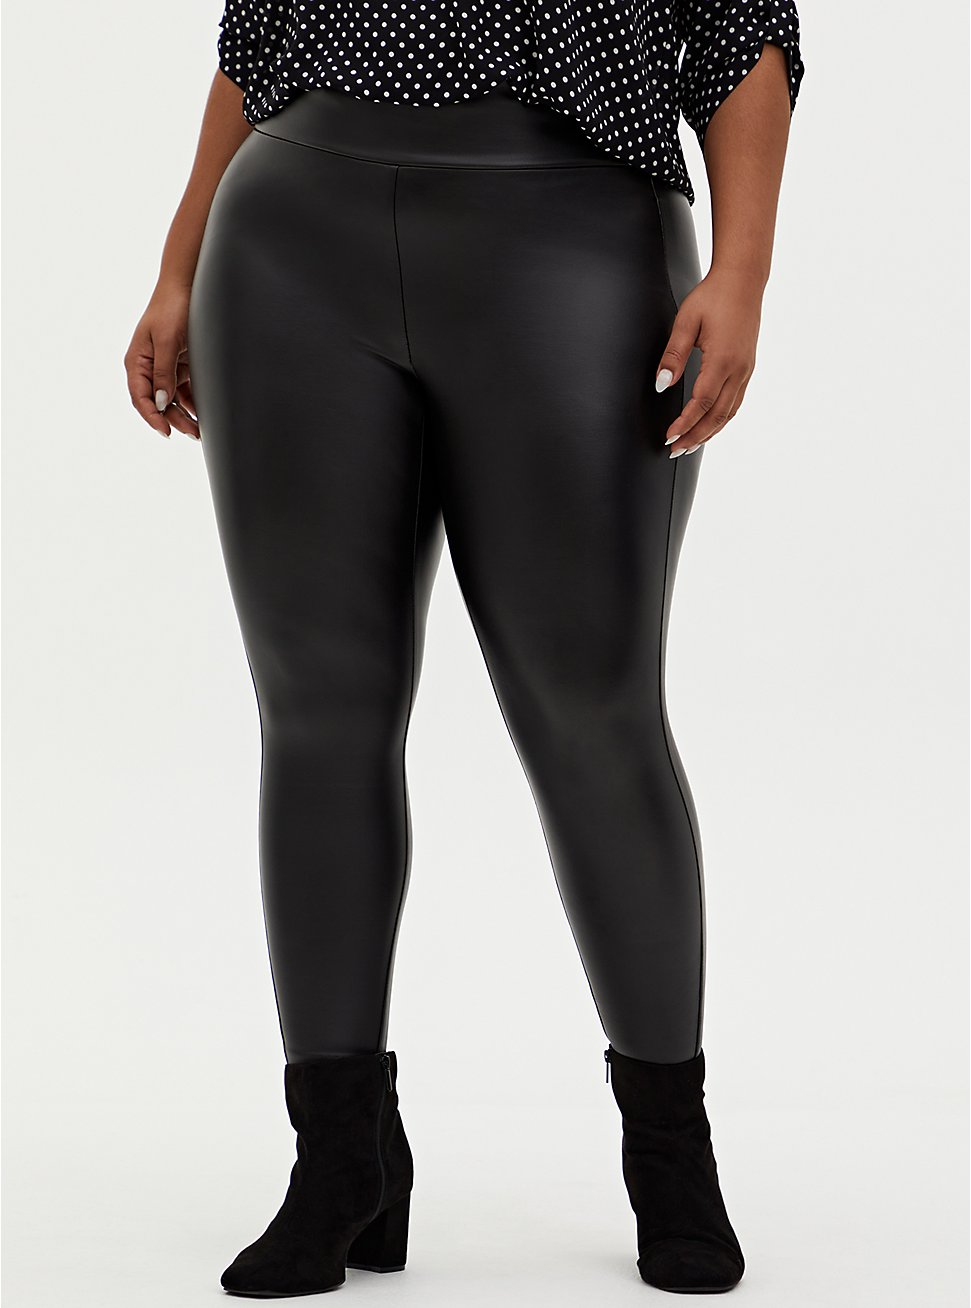 Plus Size Studio Slim Fix Black Faux Leather & Premium Ponte Pull-On Pixie Pant , DEEP BLACK, hi-res